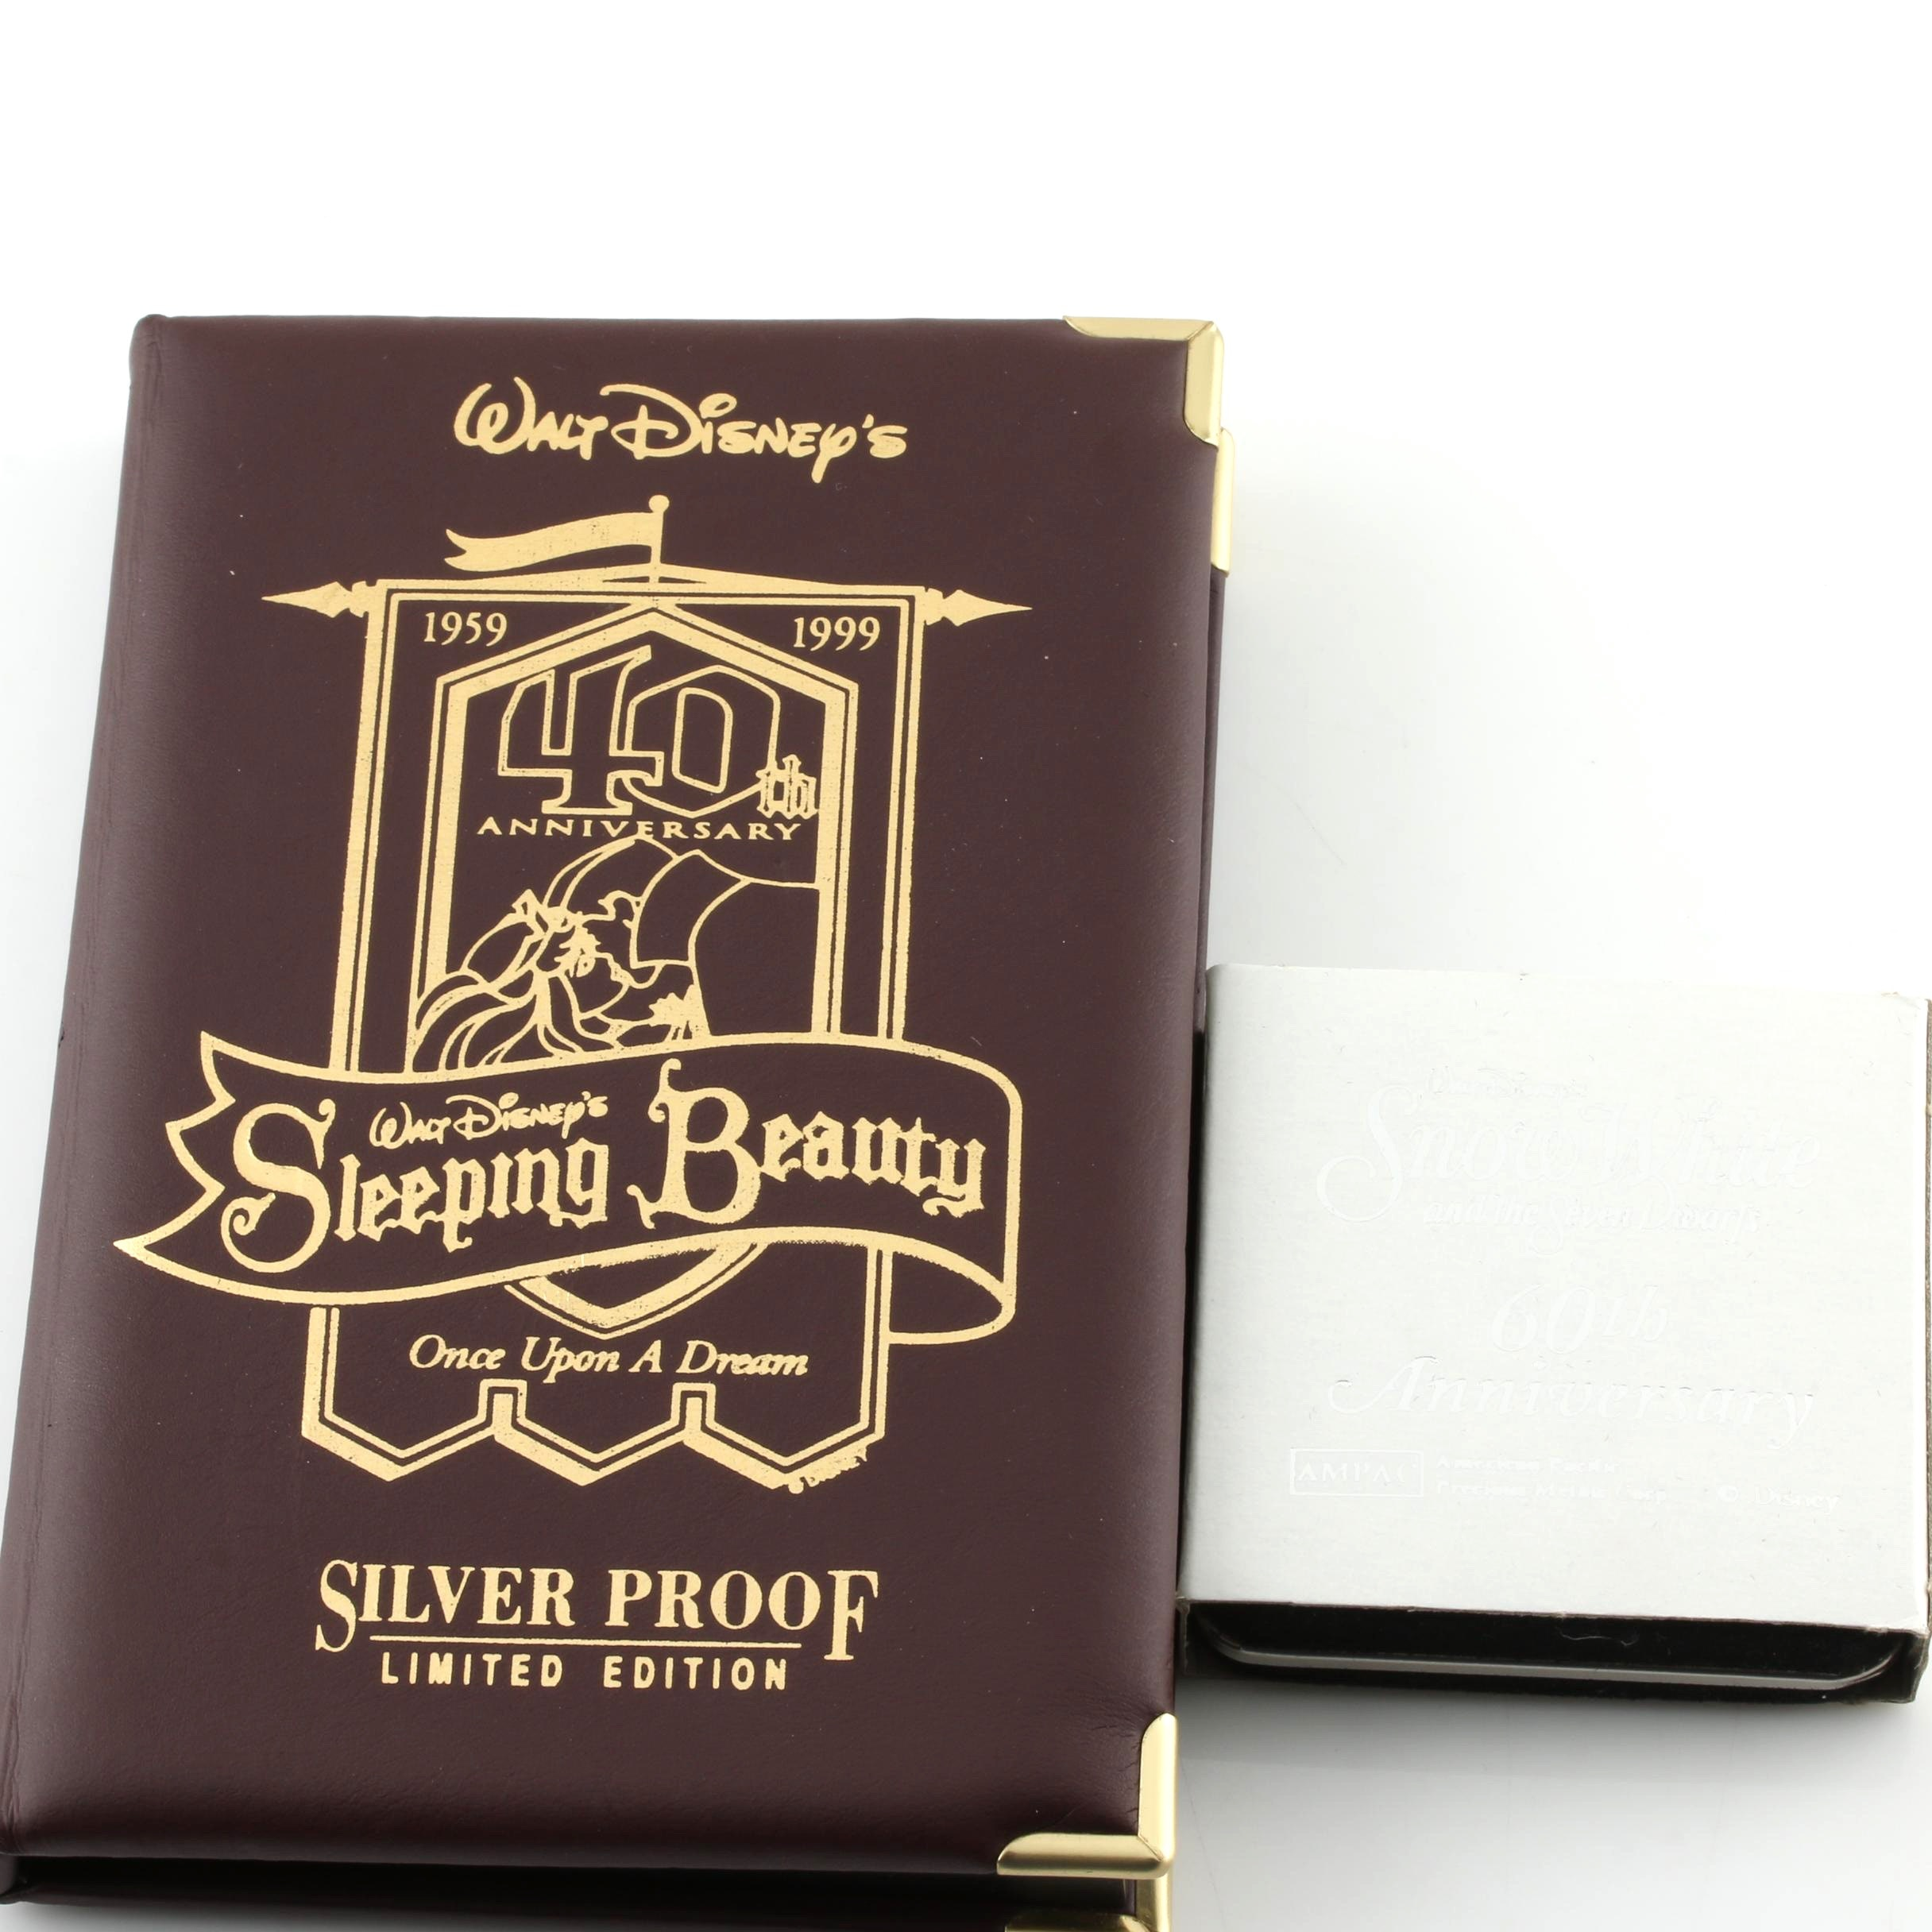 Group of Two Walt Disney's Silver Commemorative Proof Bullion Coins